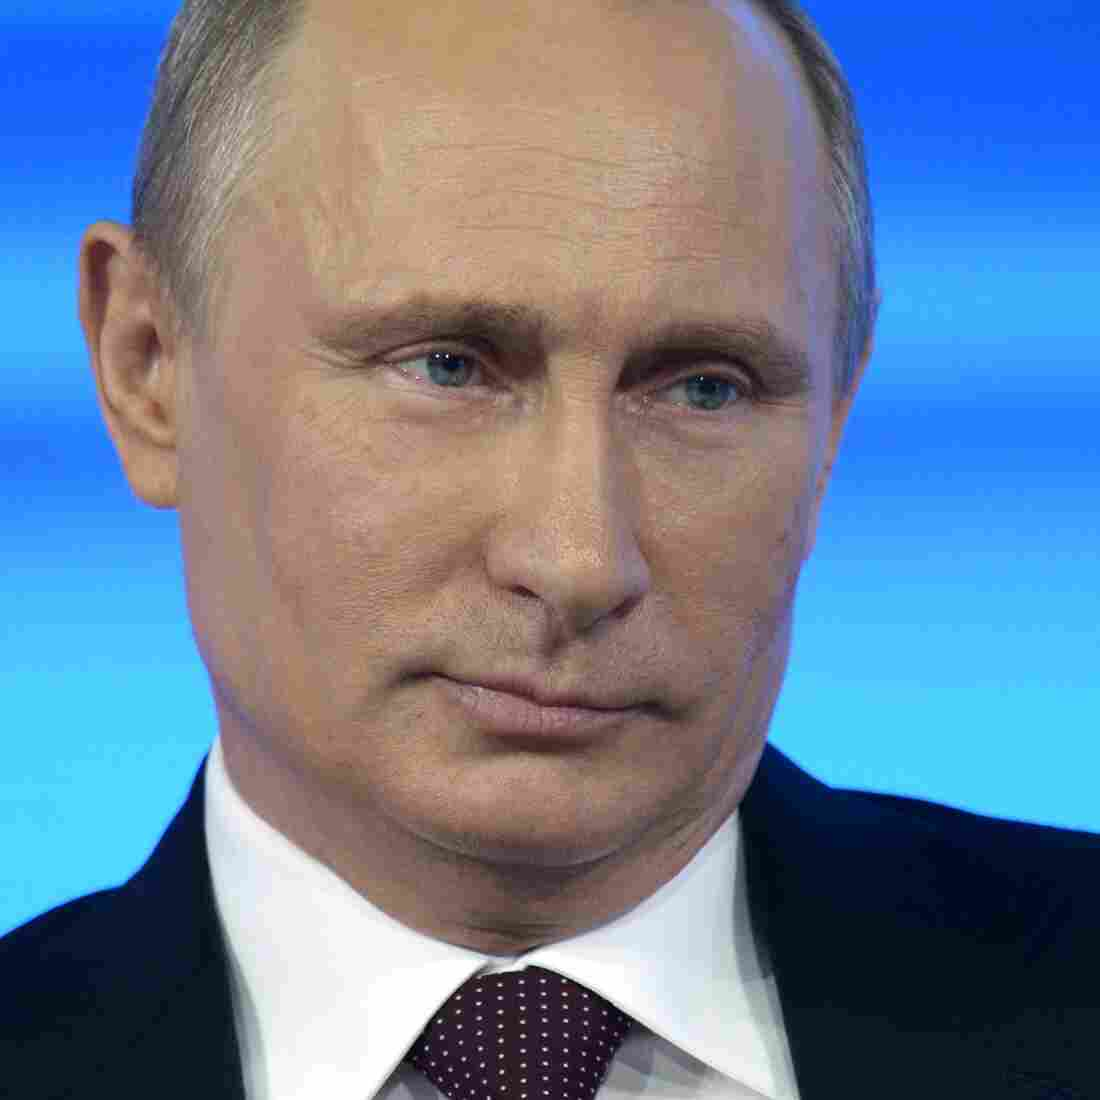 Russian President Vladimir Putin, who appears not to have told the whole story about his nation's surveillance programs.